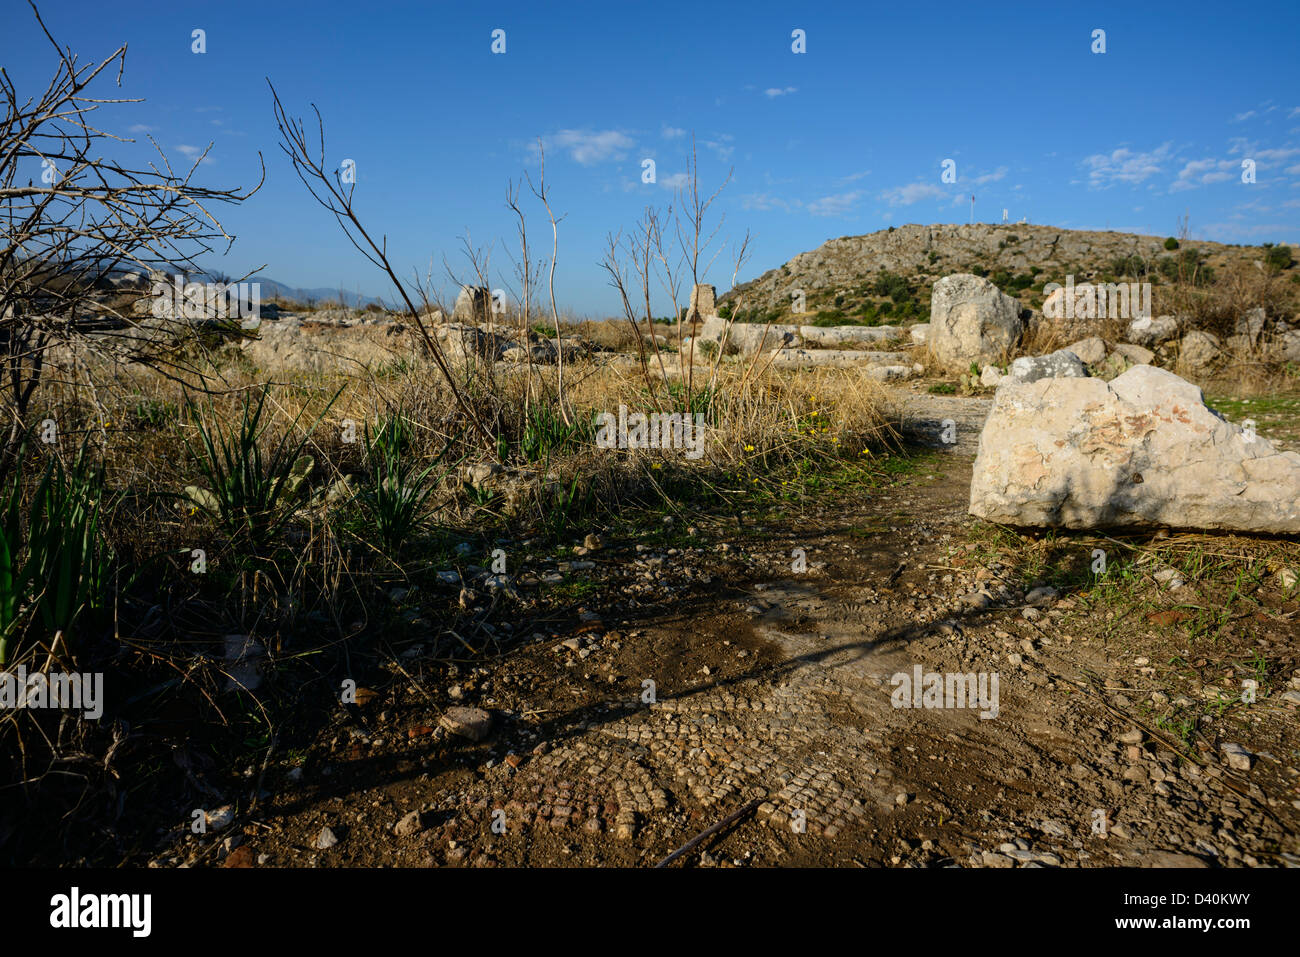 Fragments of ancient mosaic exposed in the ground at the hilltop town of Xanthos in southern Turkey - Stock Image